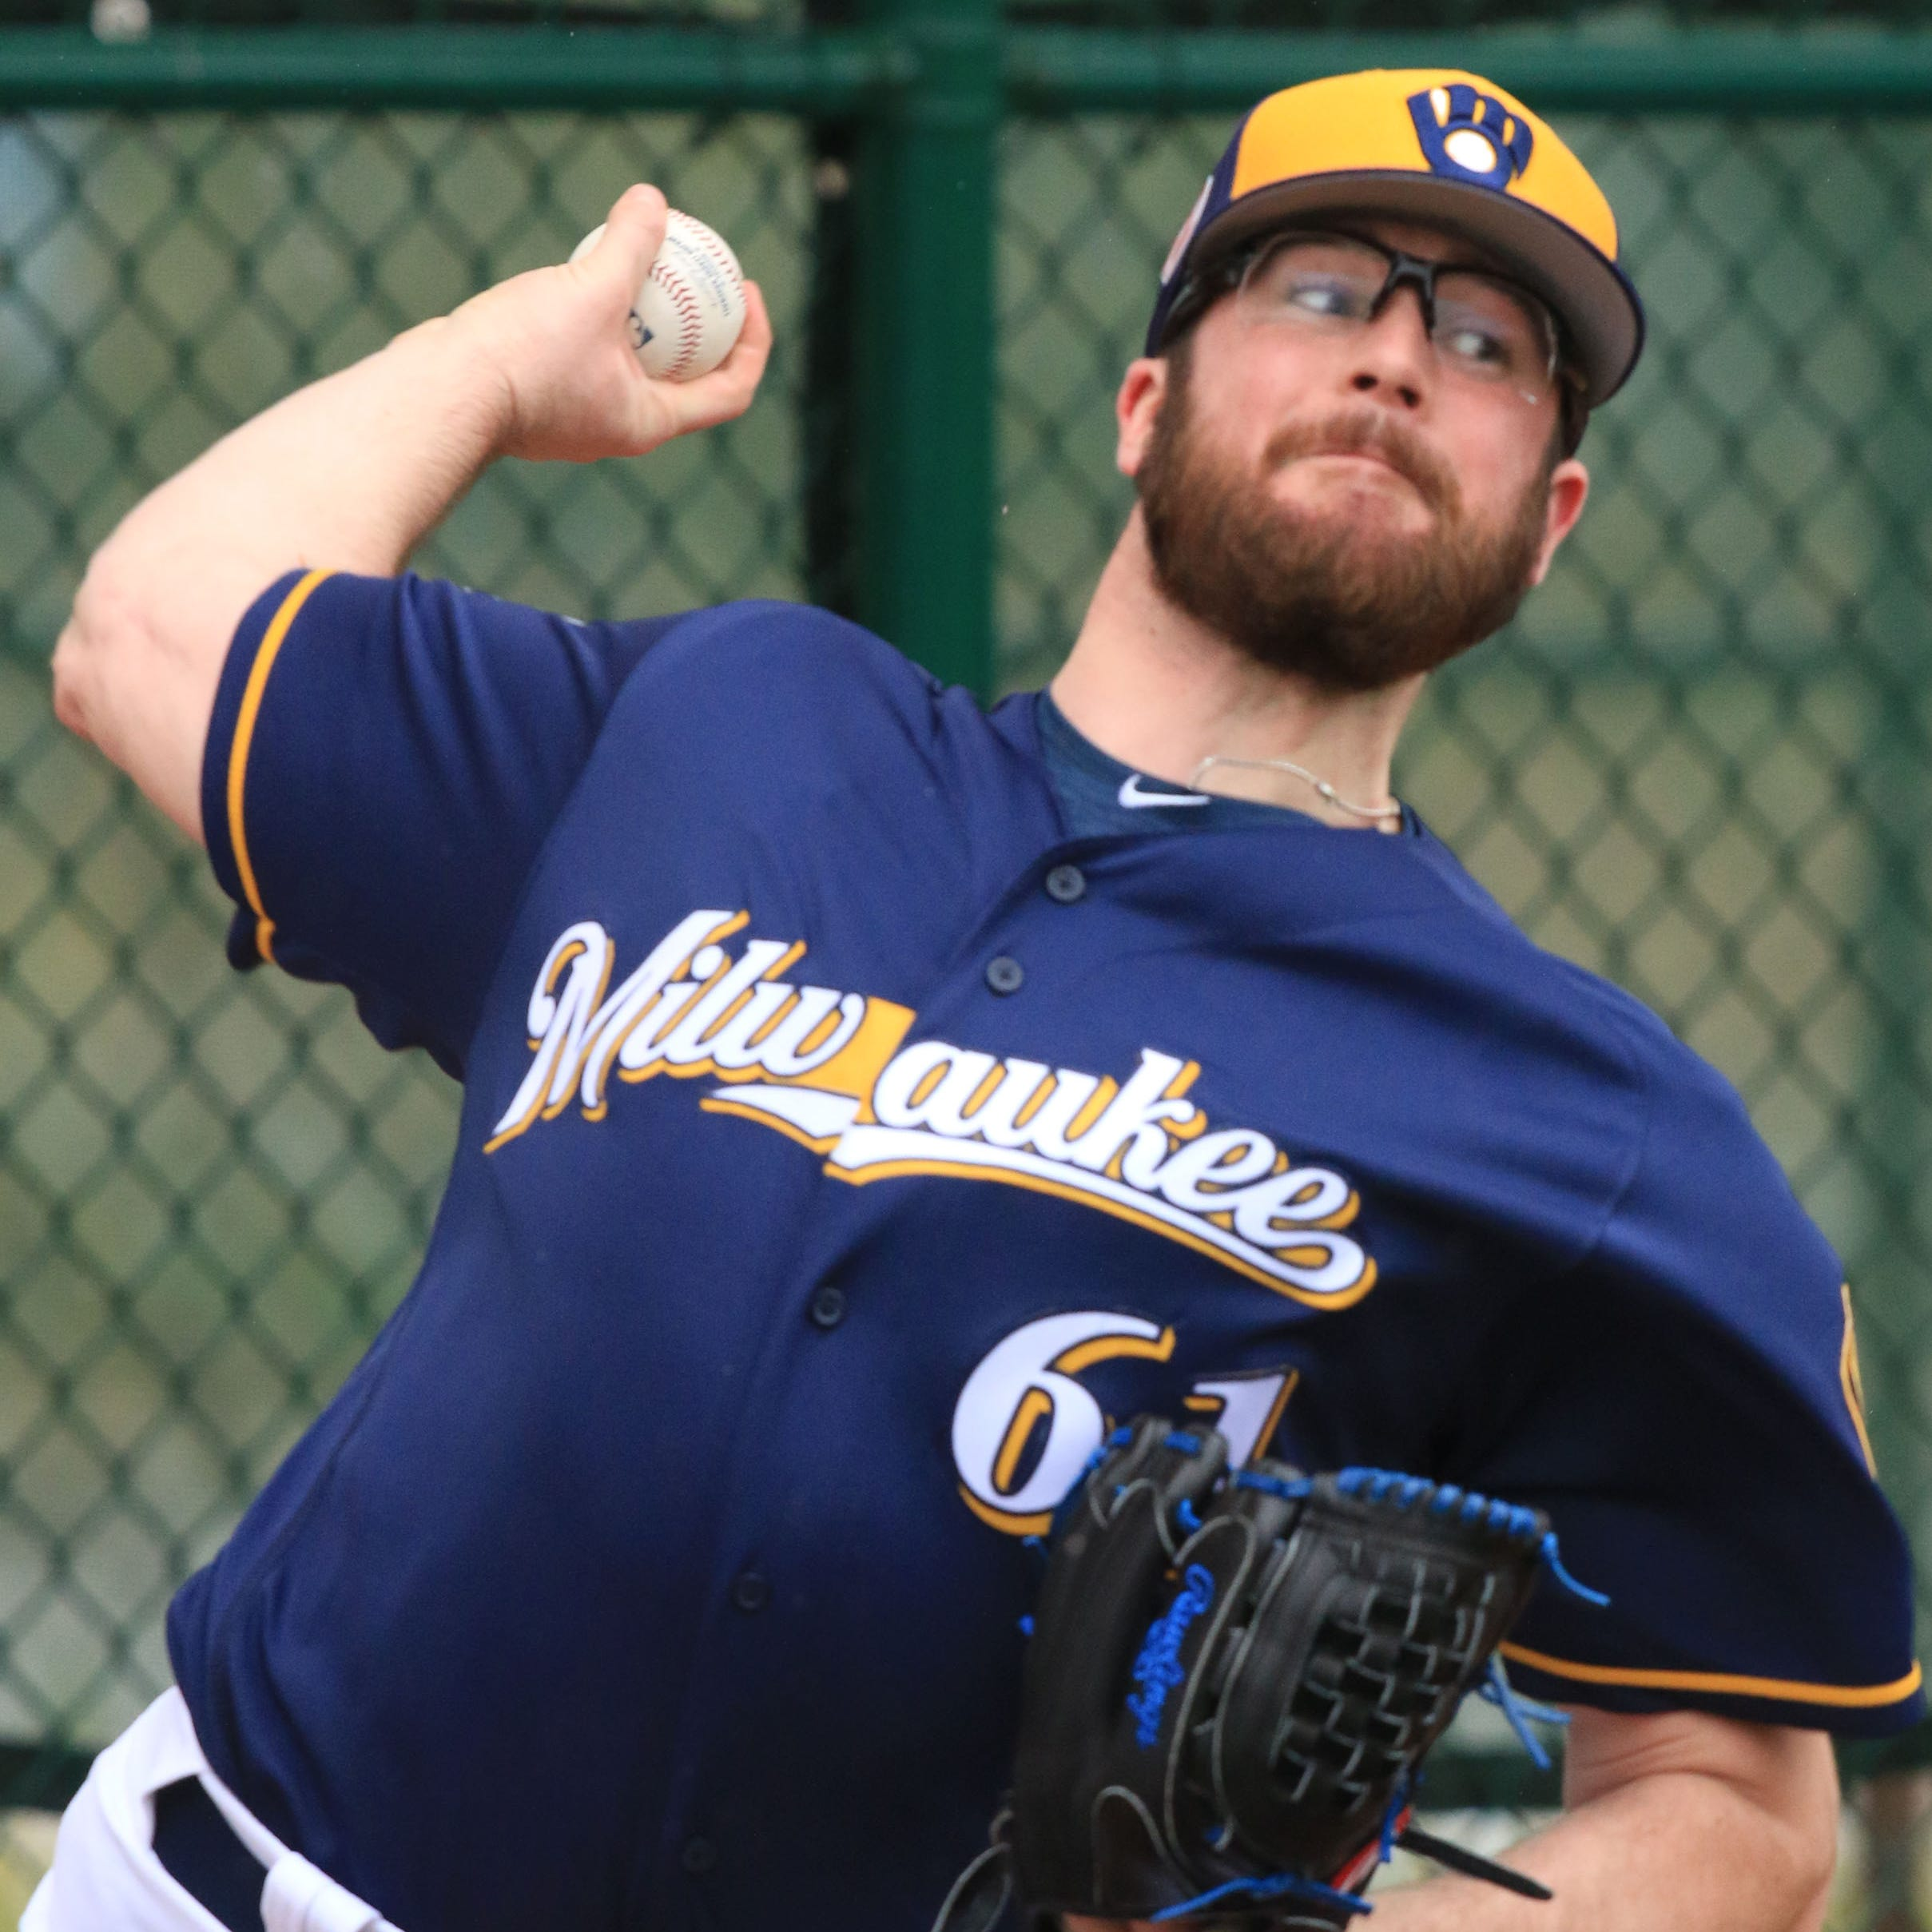 Brewers lose reliever Bobby Wahl, likely for the season, with rare torn ACL in right knee